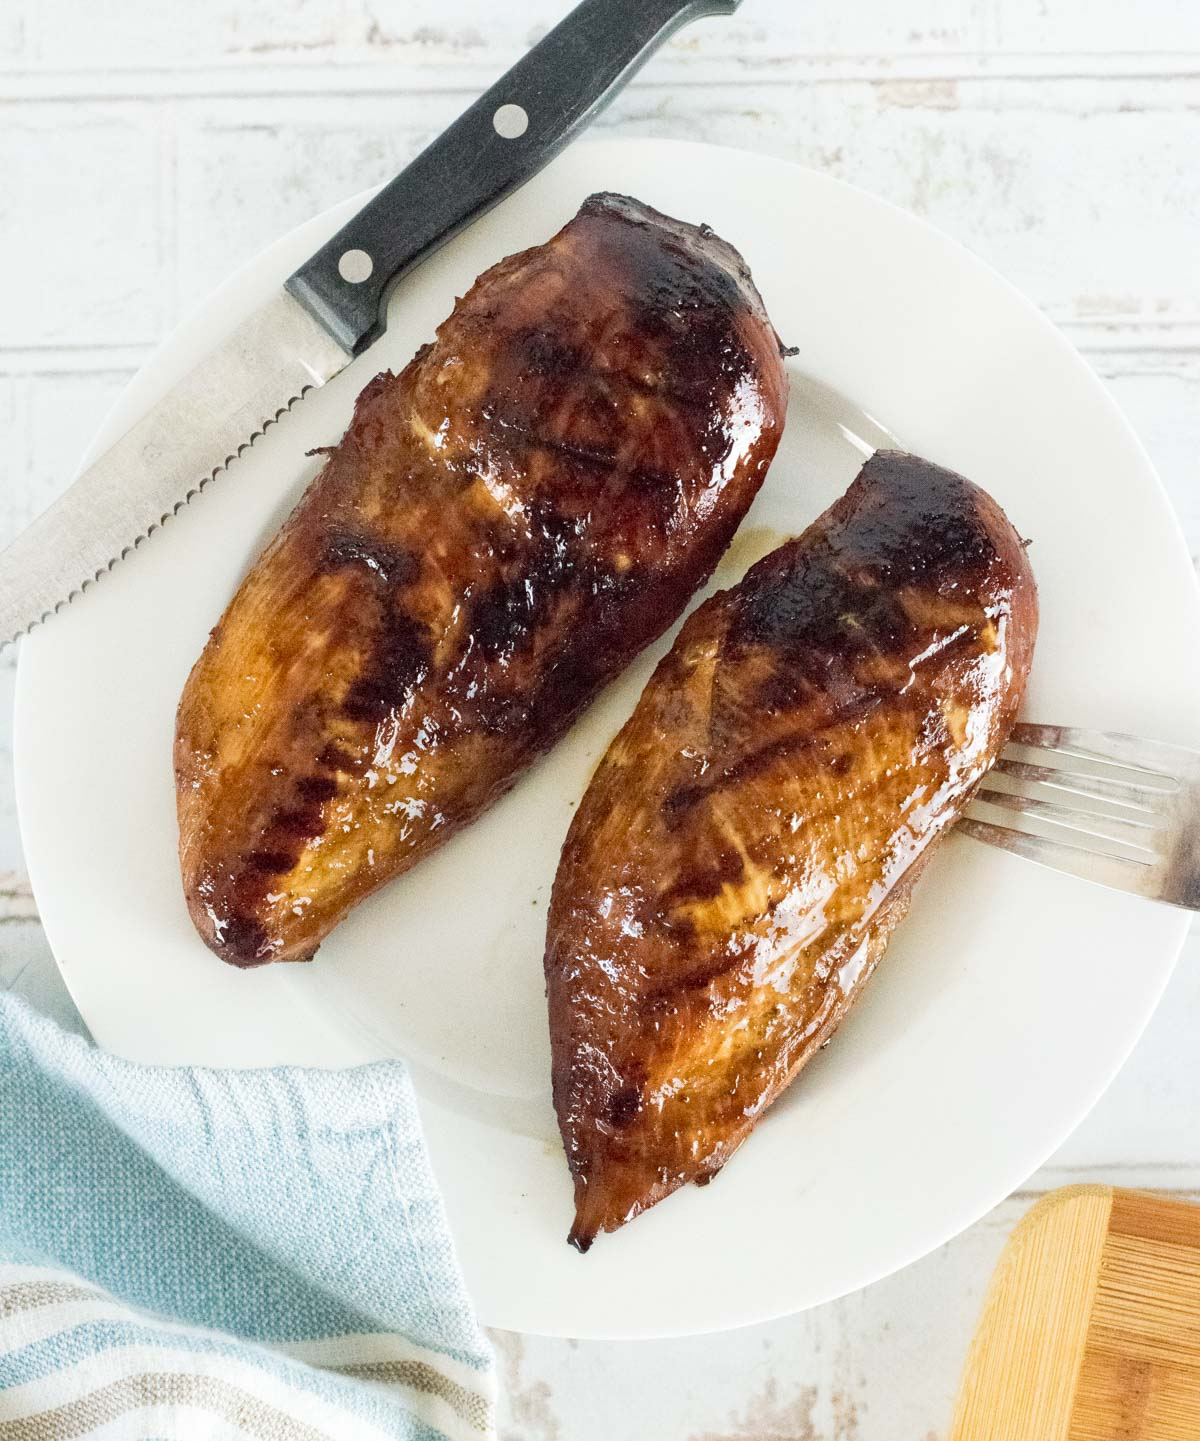 Grilled marinated chicken breast recipe